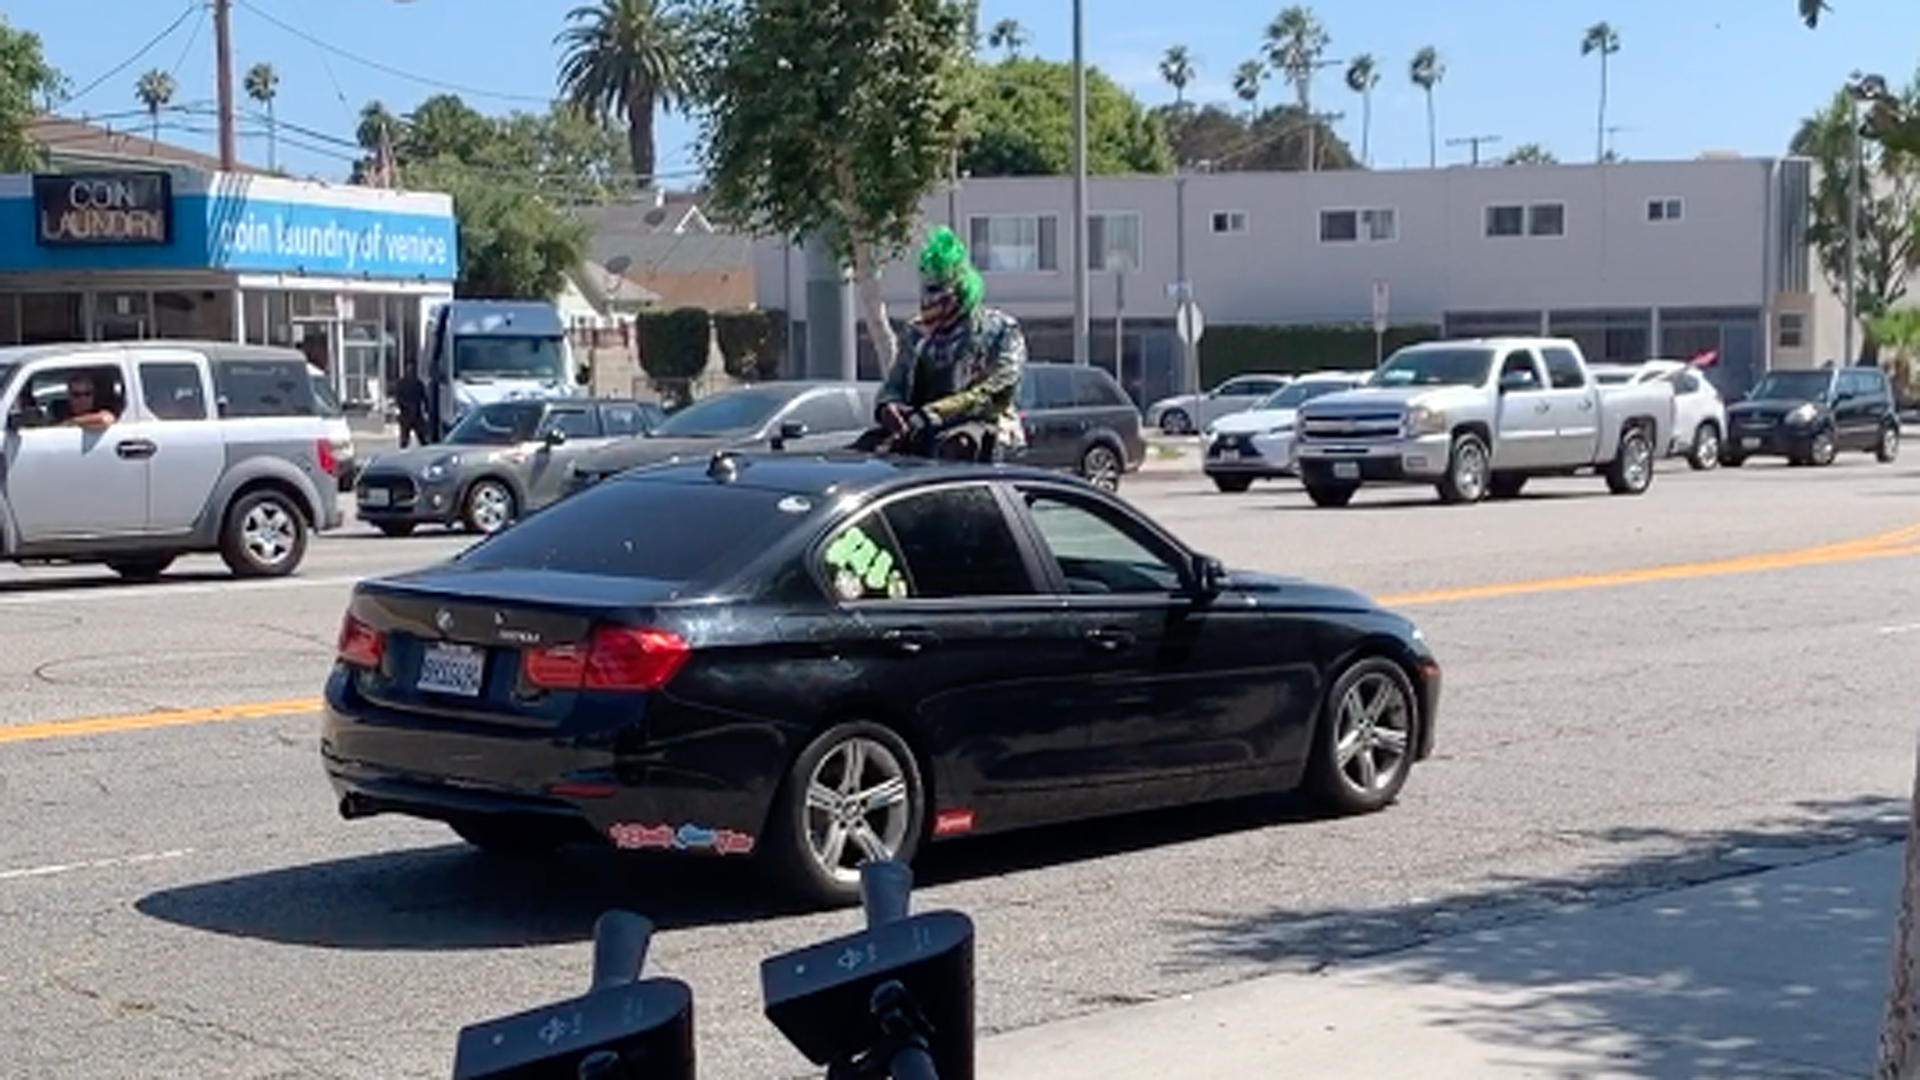 A man in a clown costume leads the California Highway Patrol on a chase through Venice on July 20, 2019. (Credit: Chuck Patton)